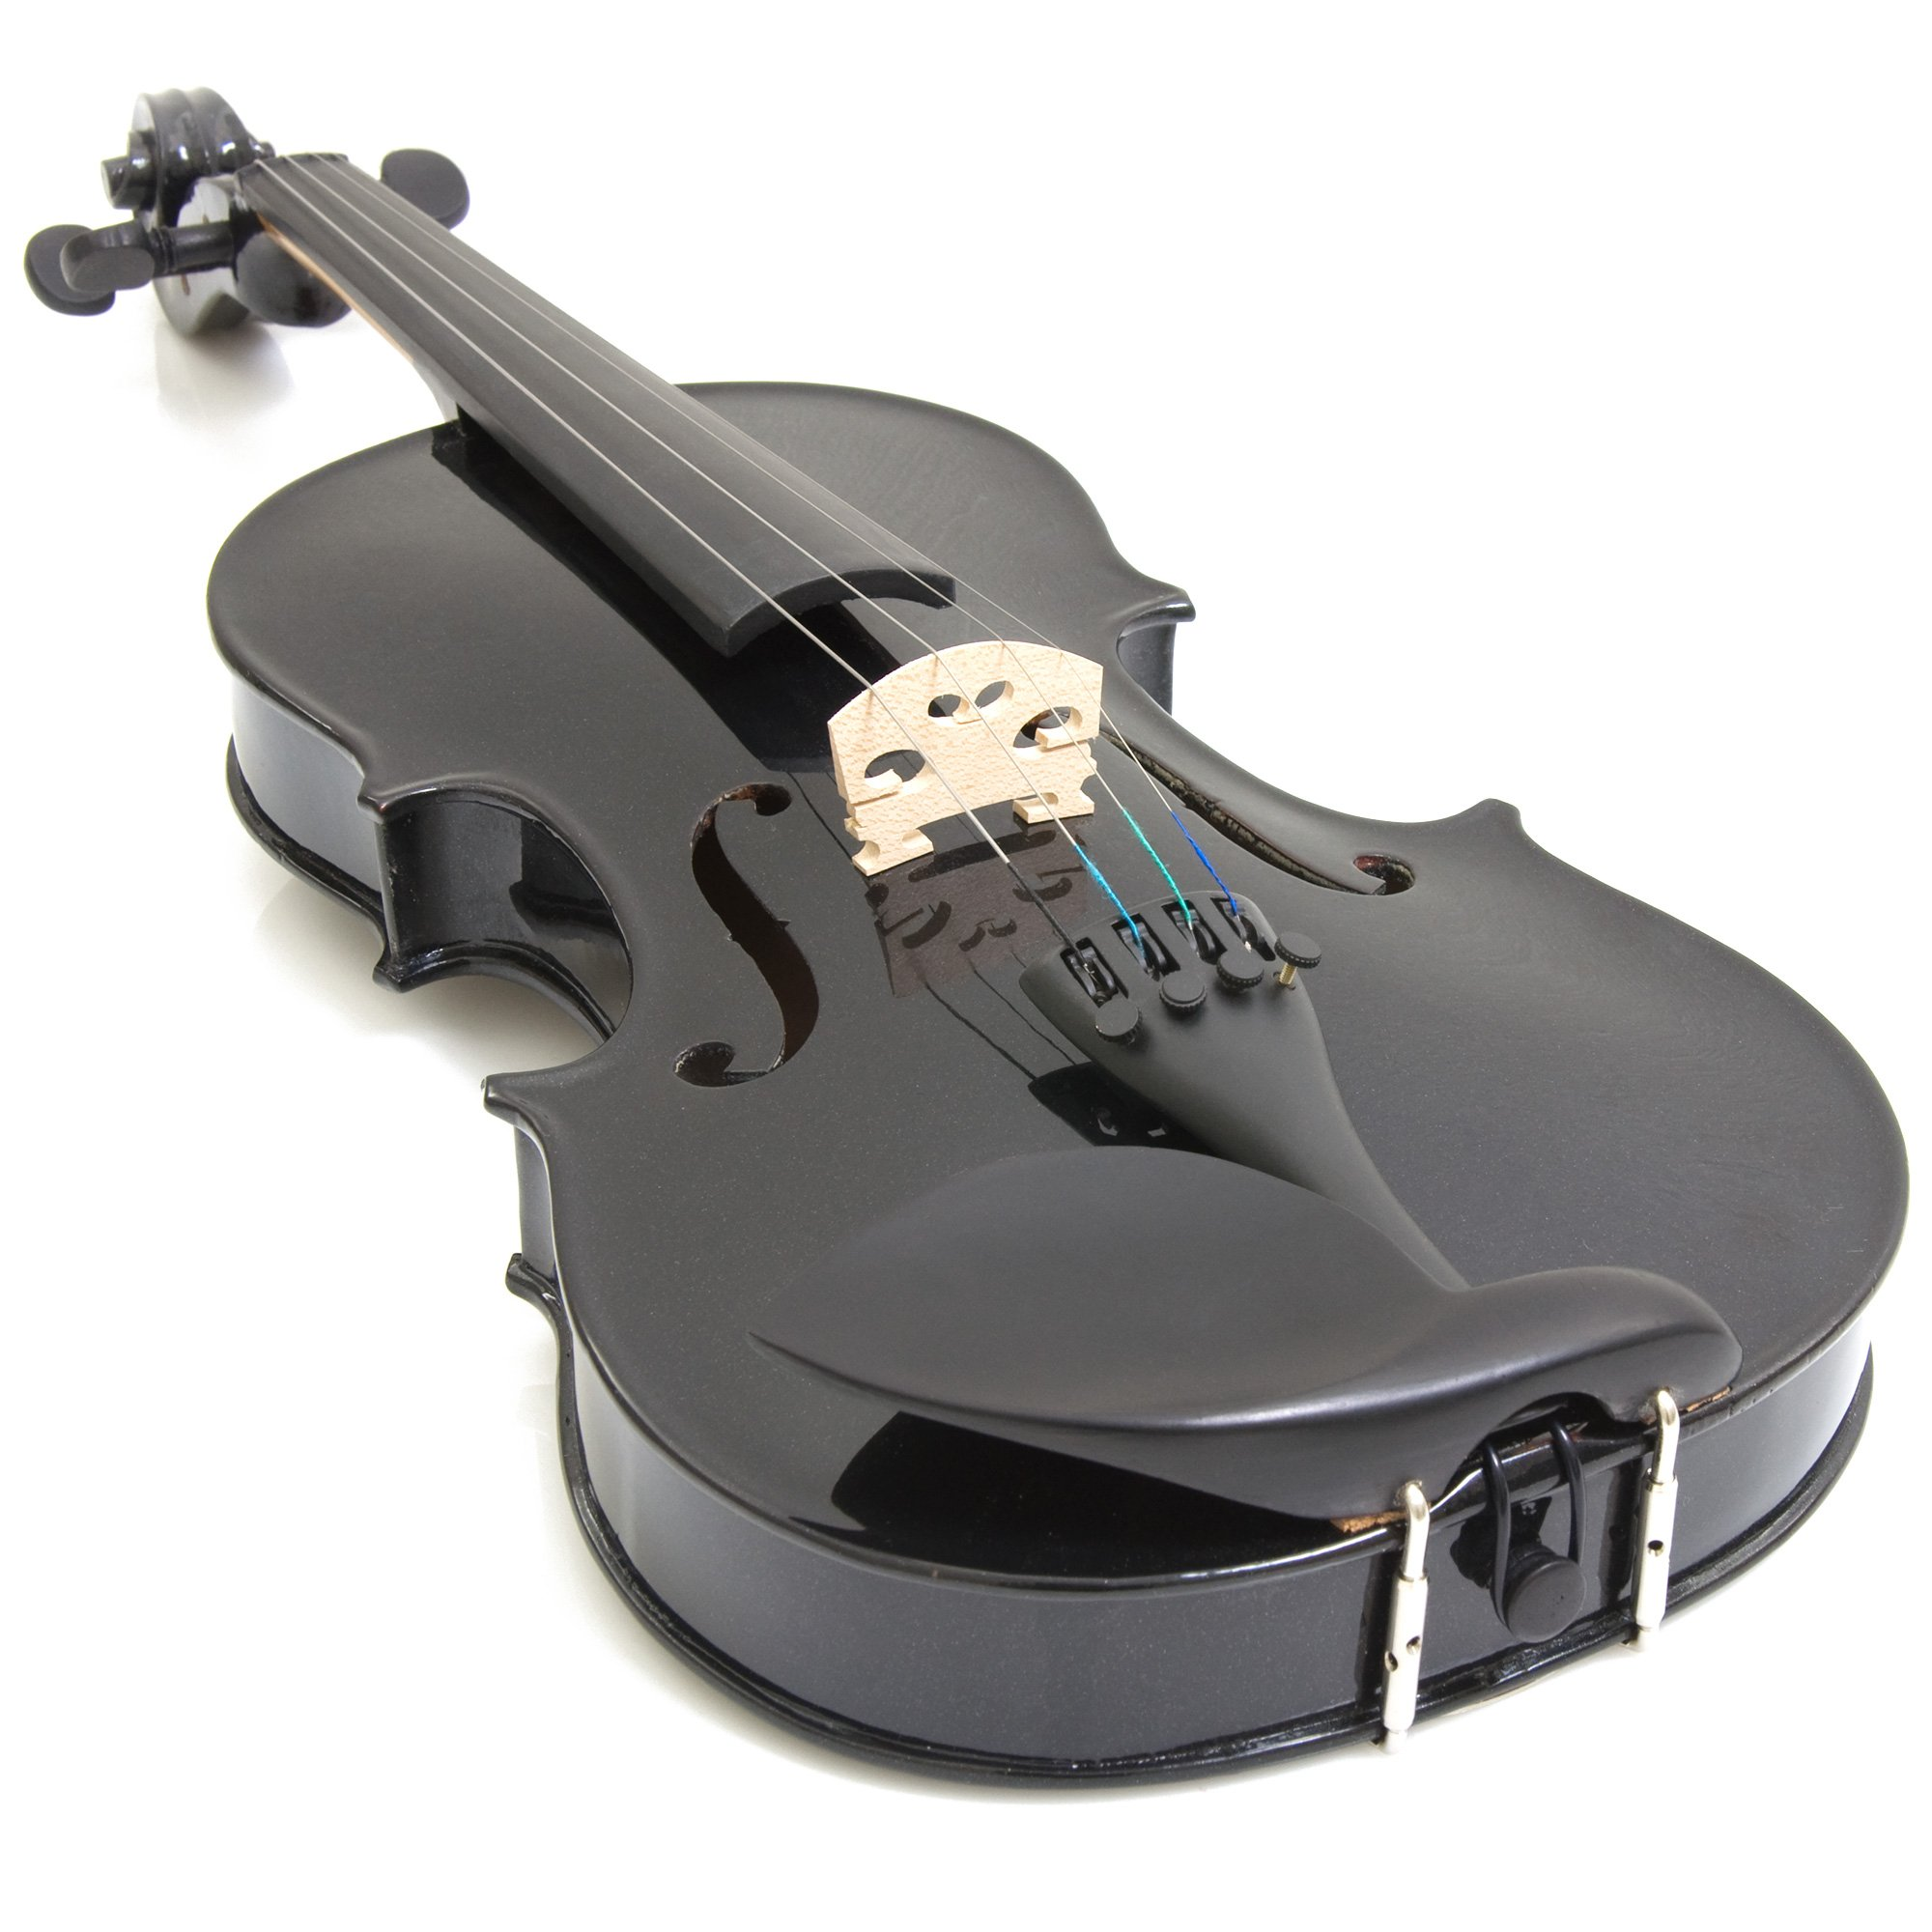 Mendini 4/4 MV-Black Solid Wood Violin with Tuner, Lesson Book, Shoulder Rest, Extra Strings, Bow and Case, Metallic Black Full Size by Mendini by Cecilio (Image #3)